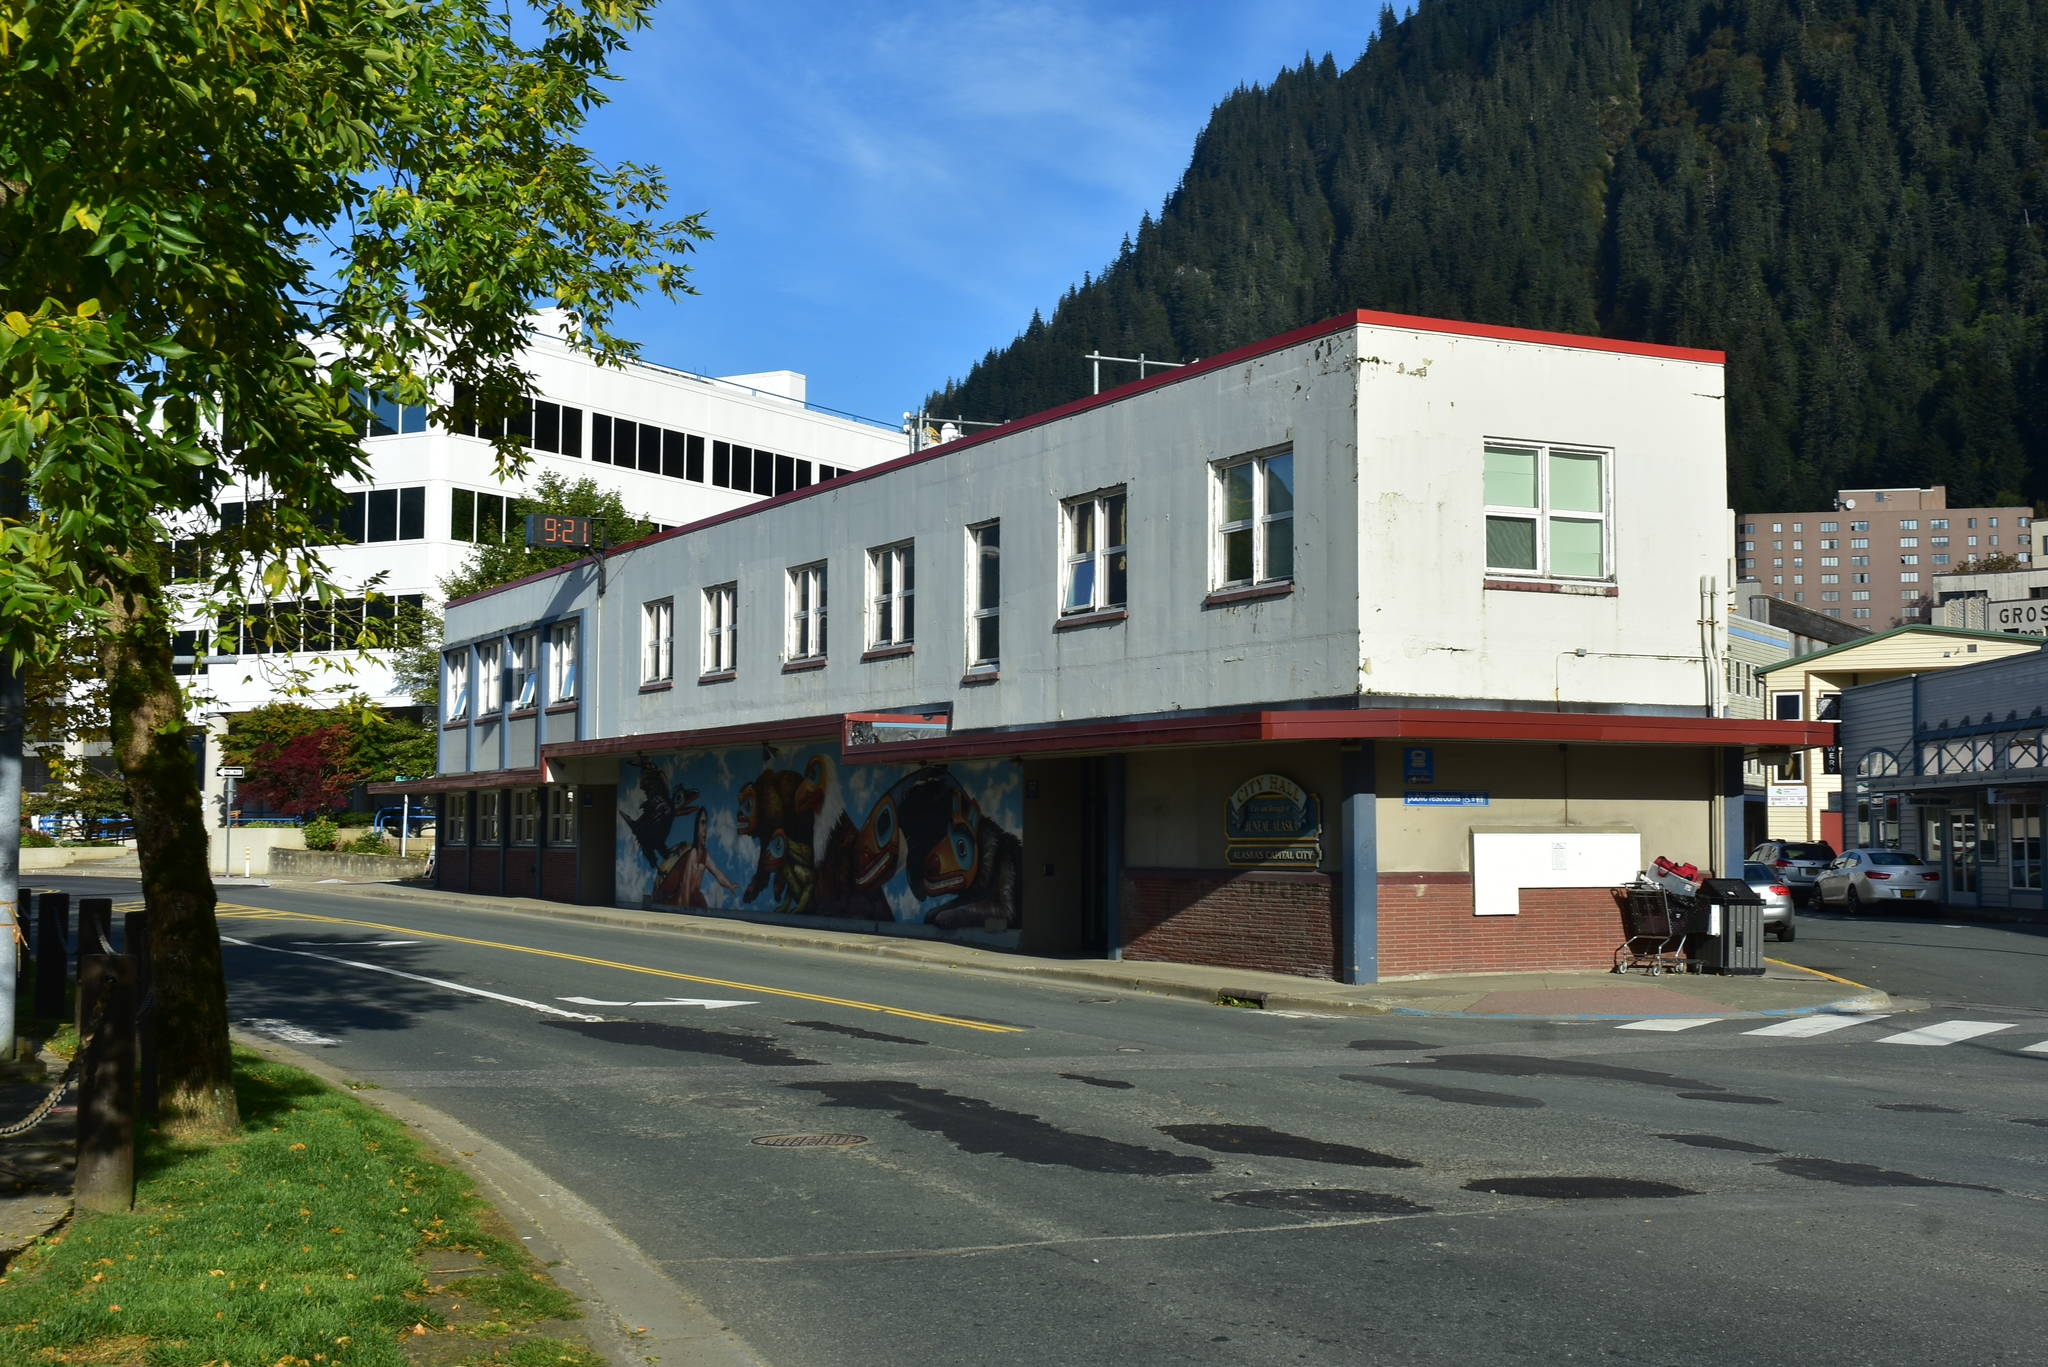 Juneau City Hall on Tuesday, Sept. 15, 2020. (Peter Segall / Juneau Empire)